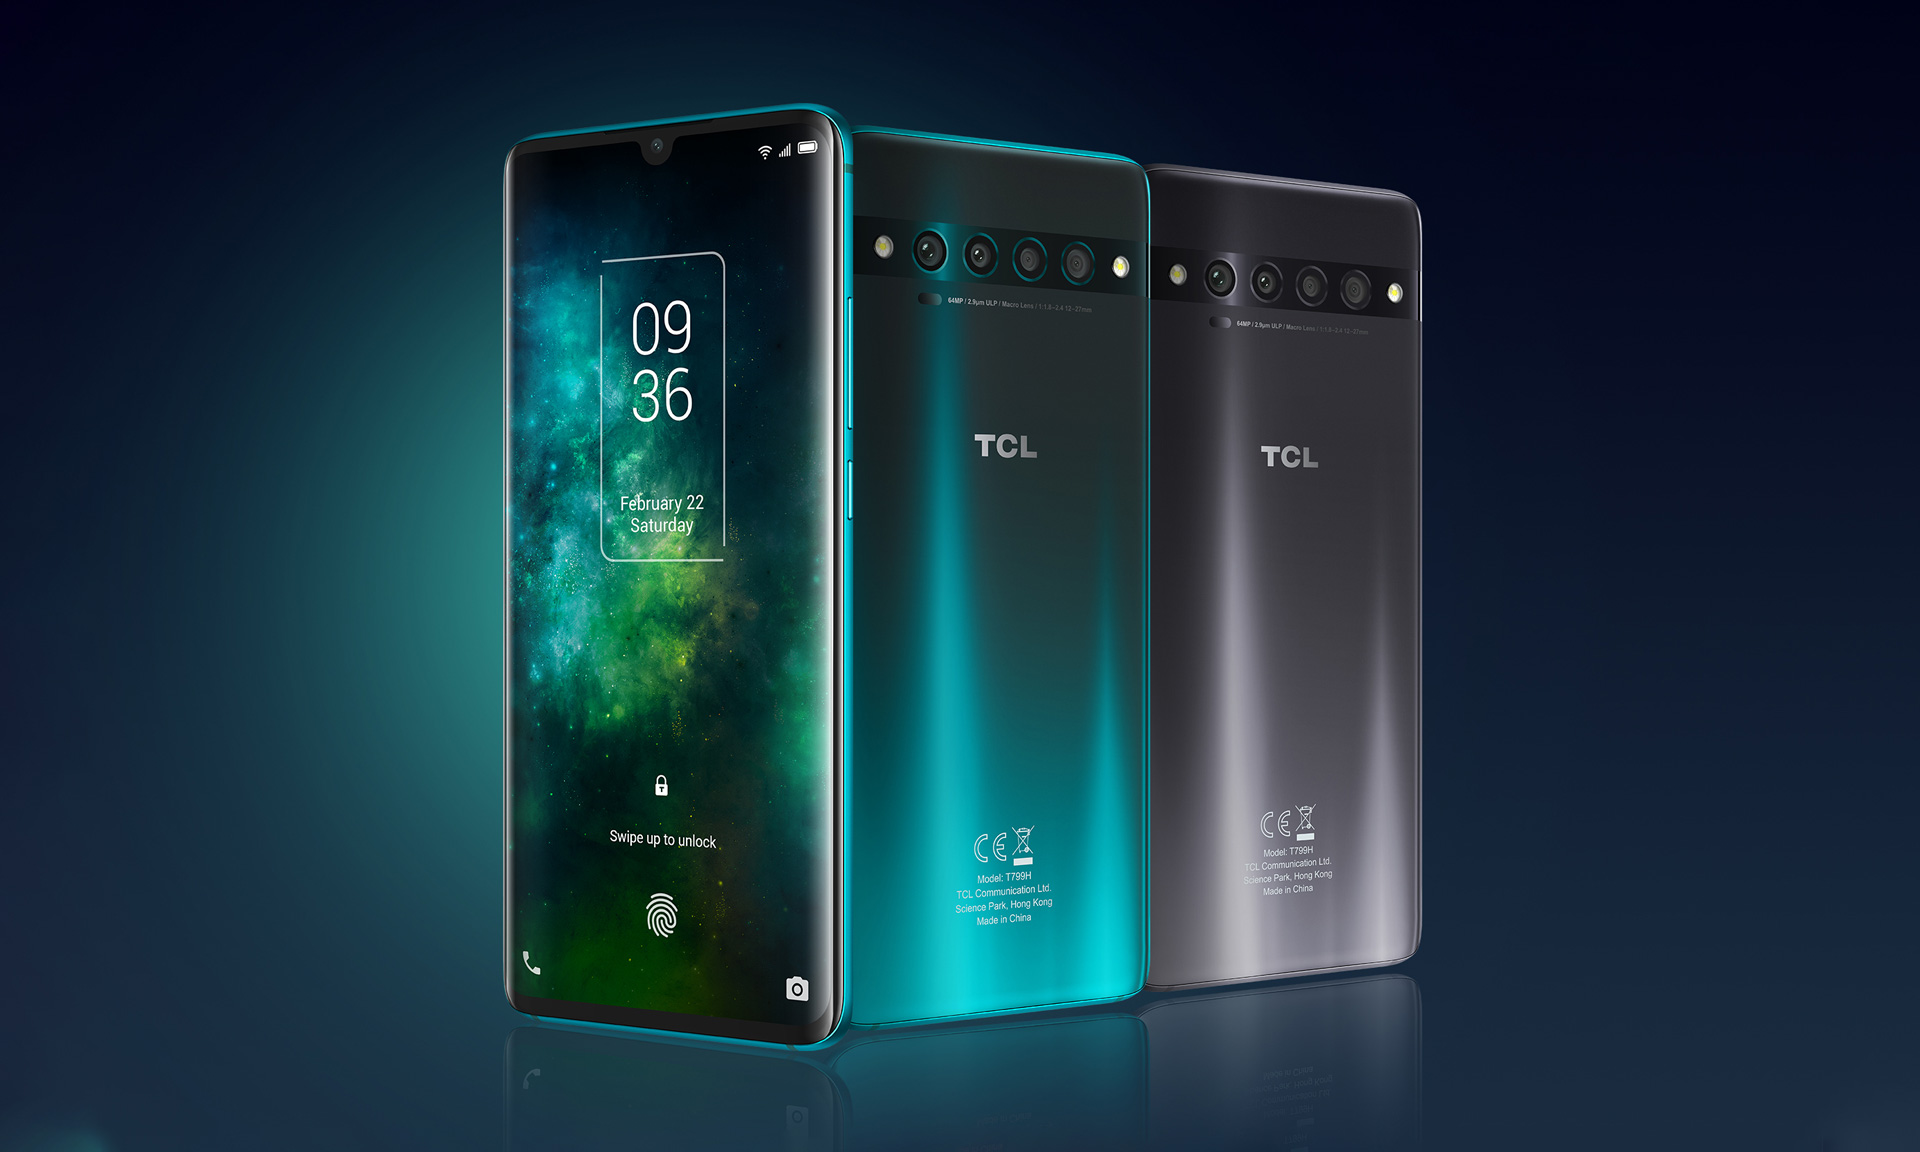 tcl to launch tcl 10 smartphone series in pakistan